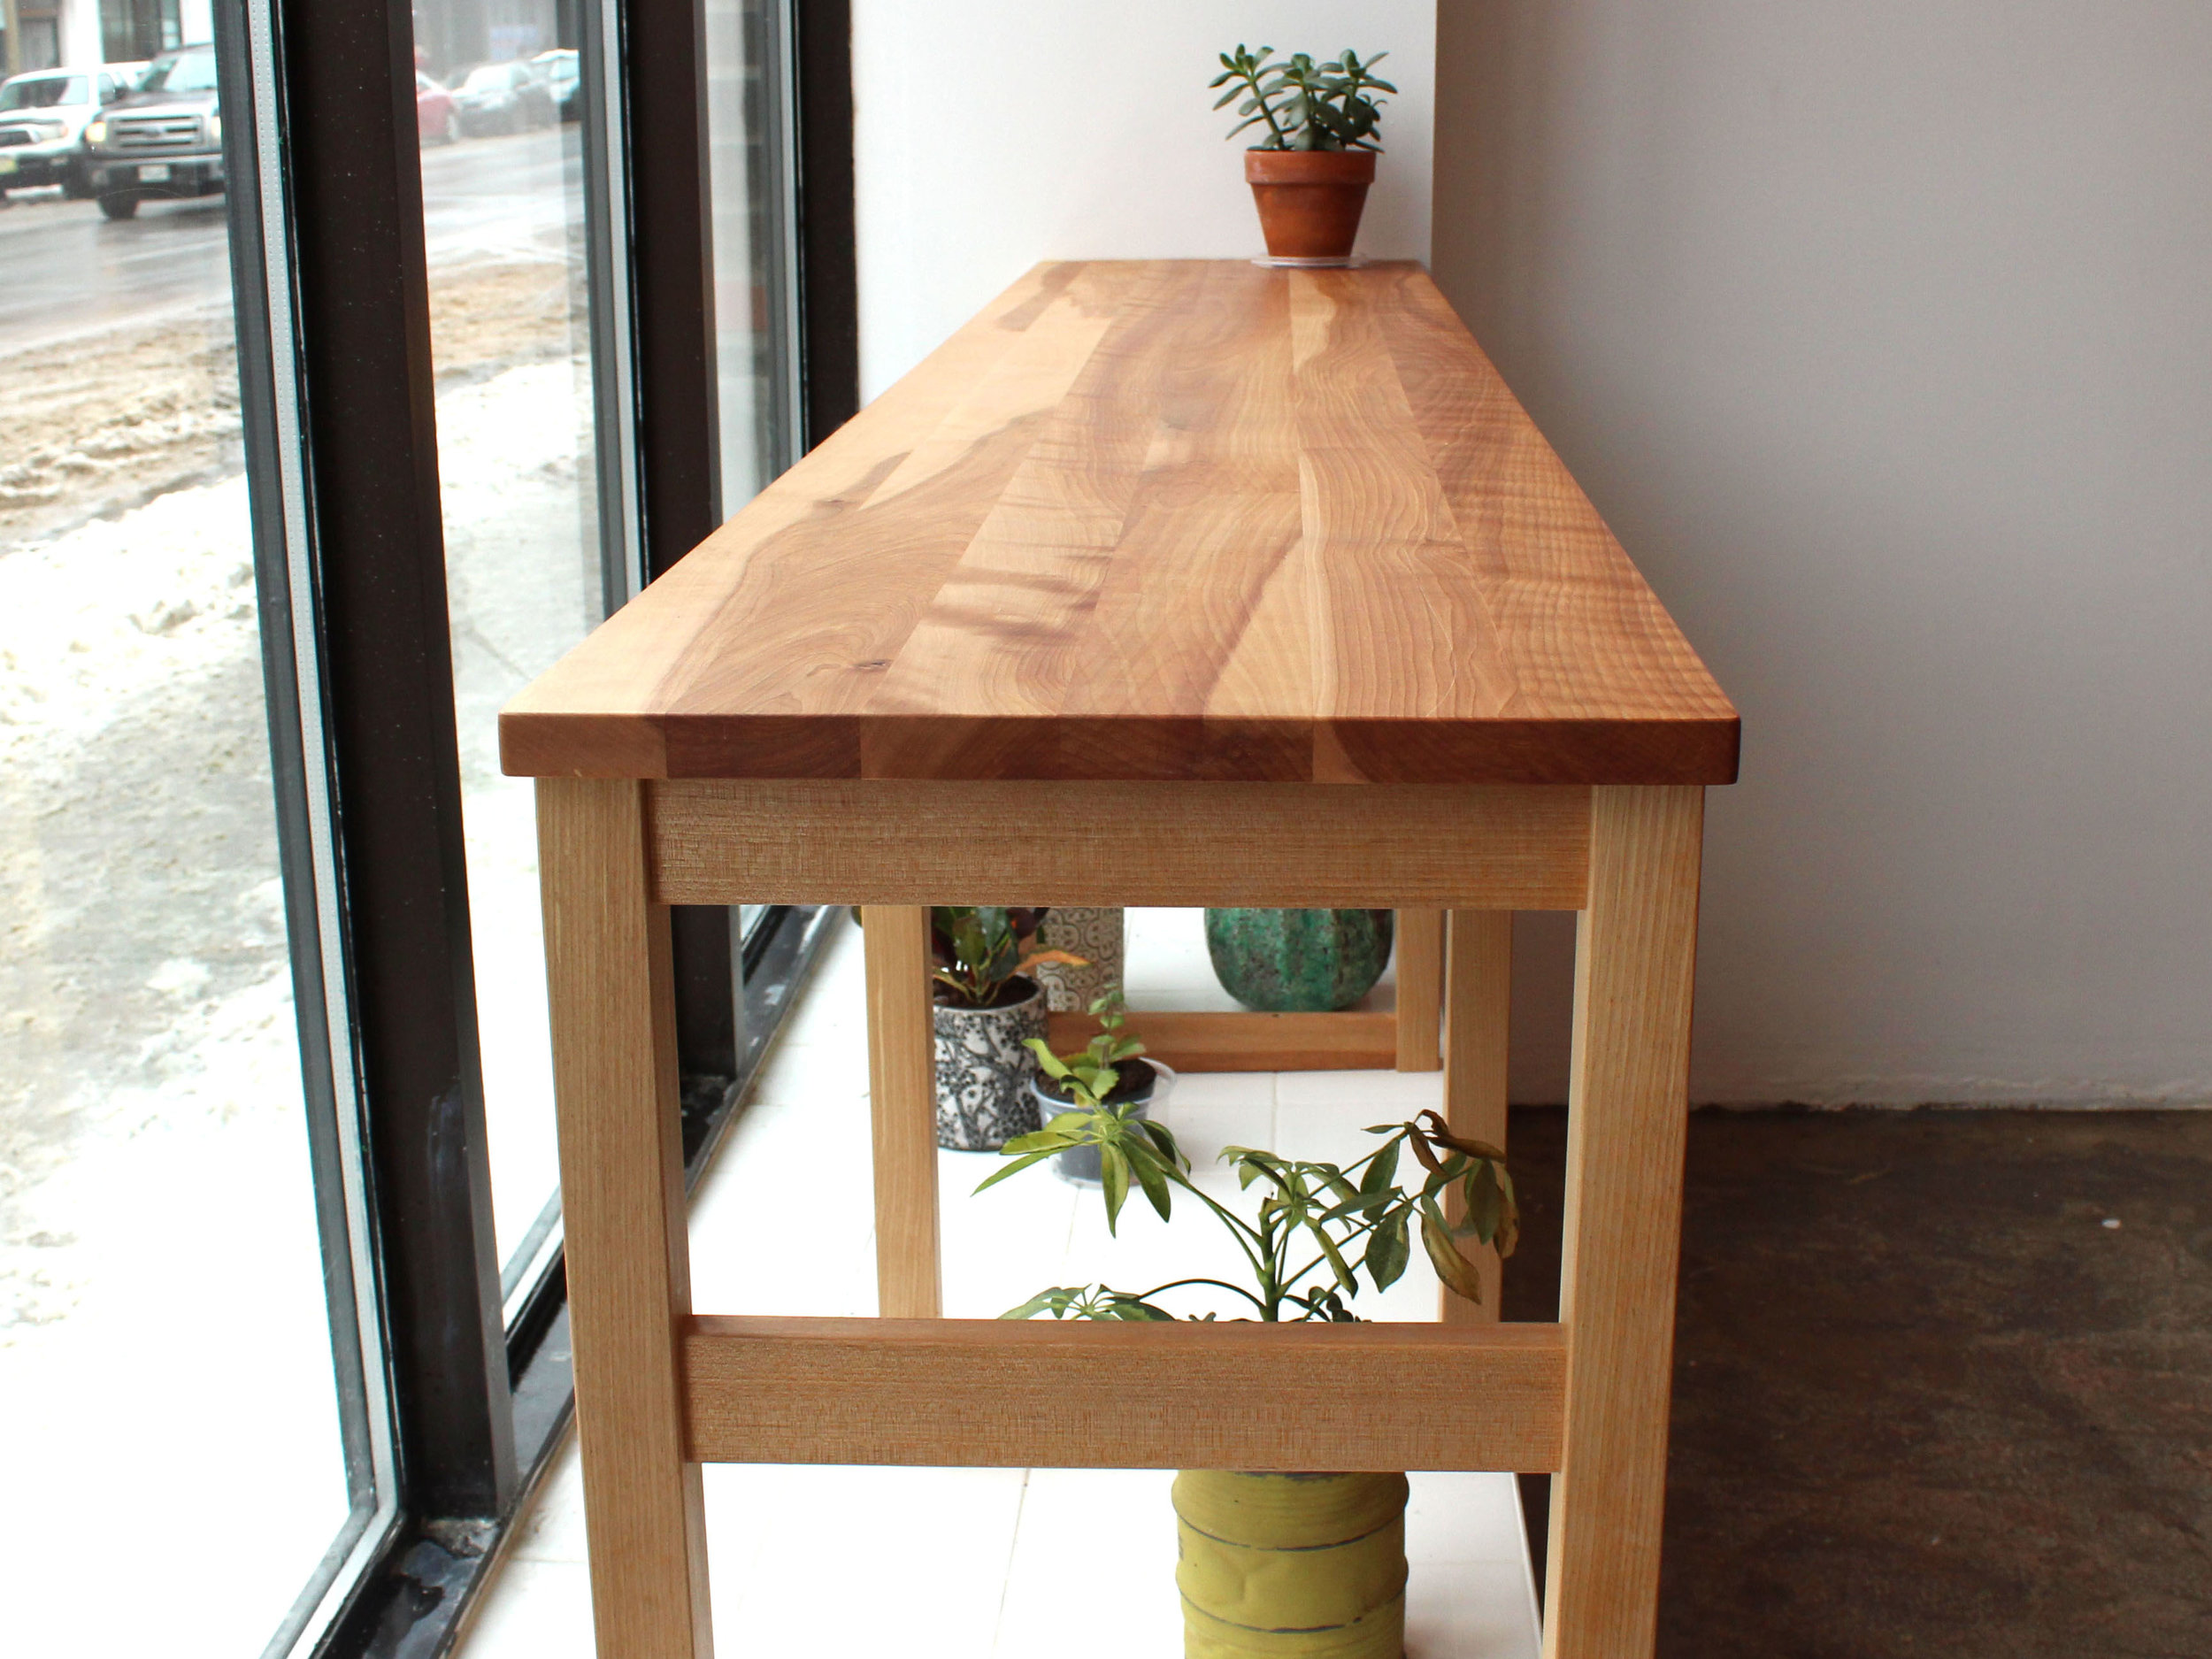 custom cabinet montreal, custom table, montreal, solid wood, aliments viens, montreal le main, sustainable, responsible forestry